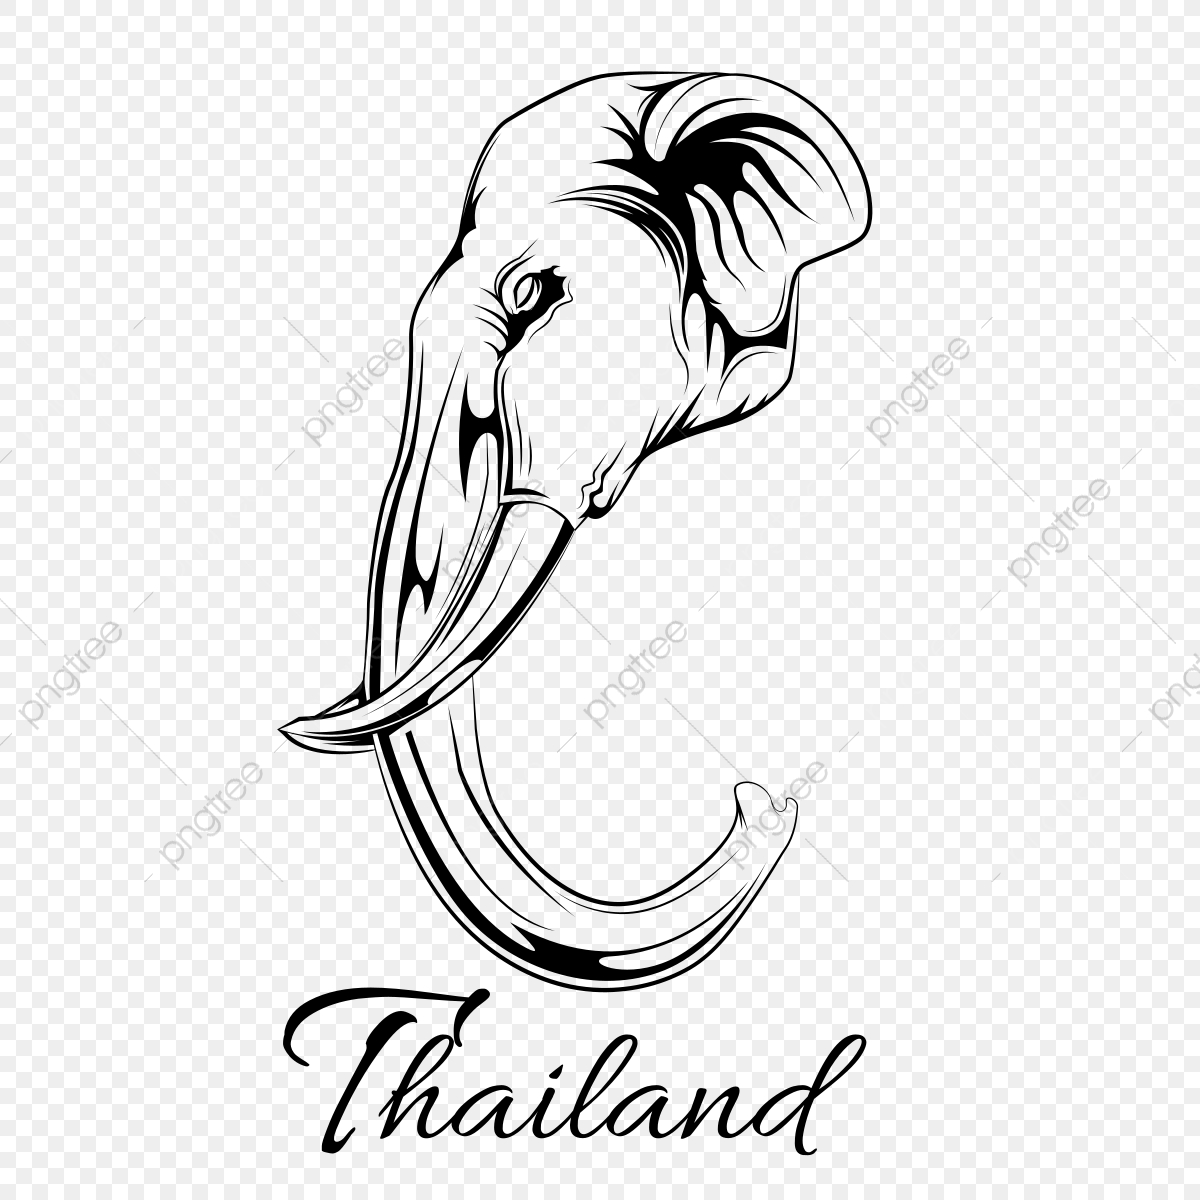 Thailand Elephant Vector Line Art Elephant Thailand Travel Png And Vector With Transparent Background For Free Download Download free elephant png images. https pngtree com freepng thailand elephant vector line art 3704916 html